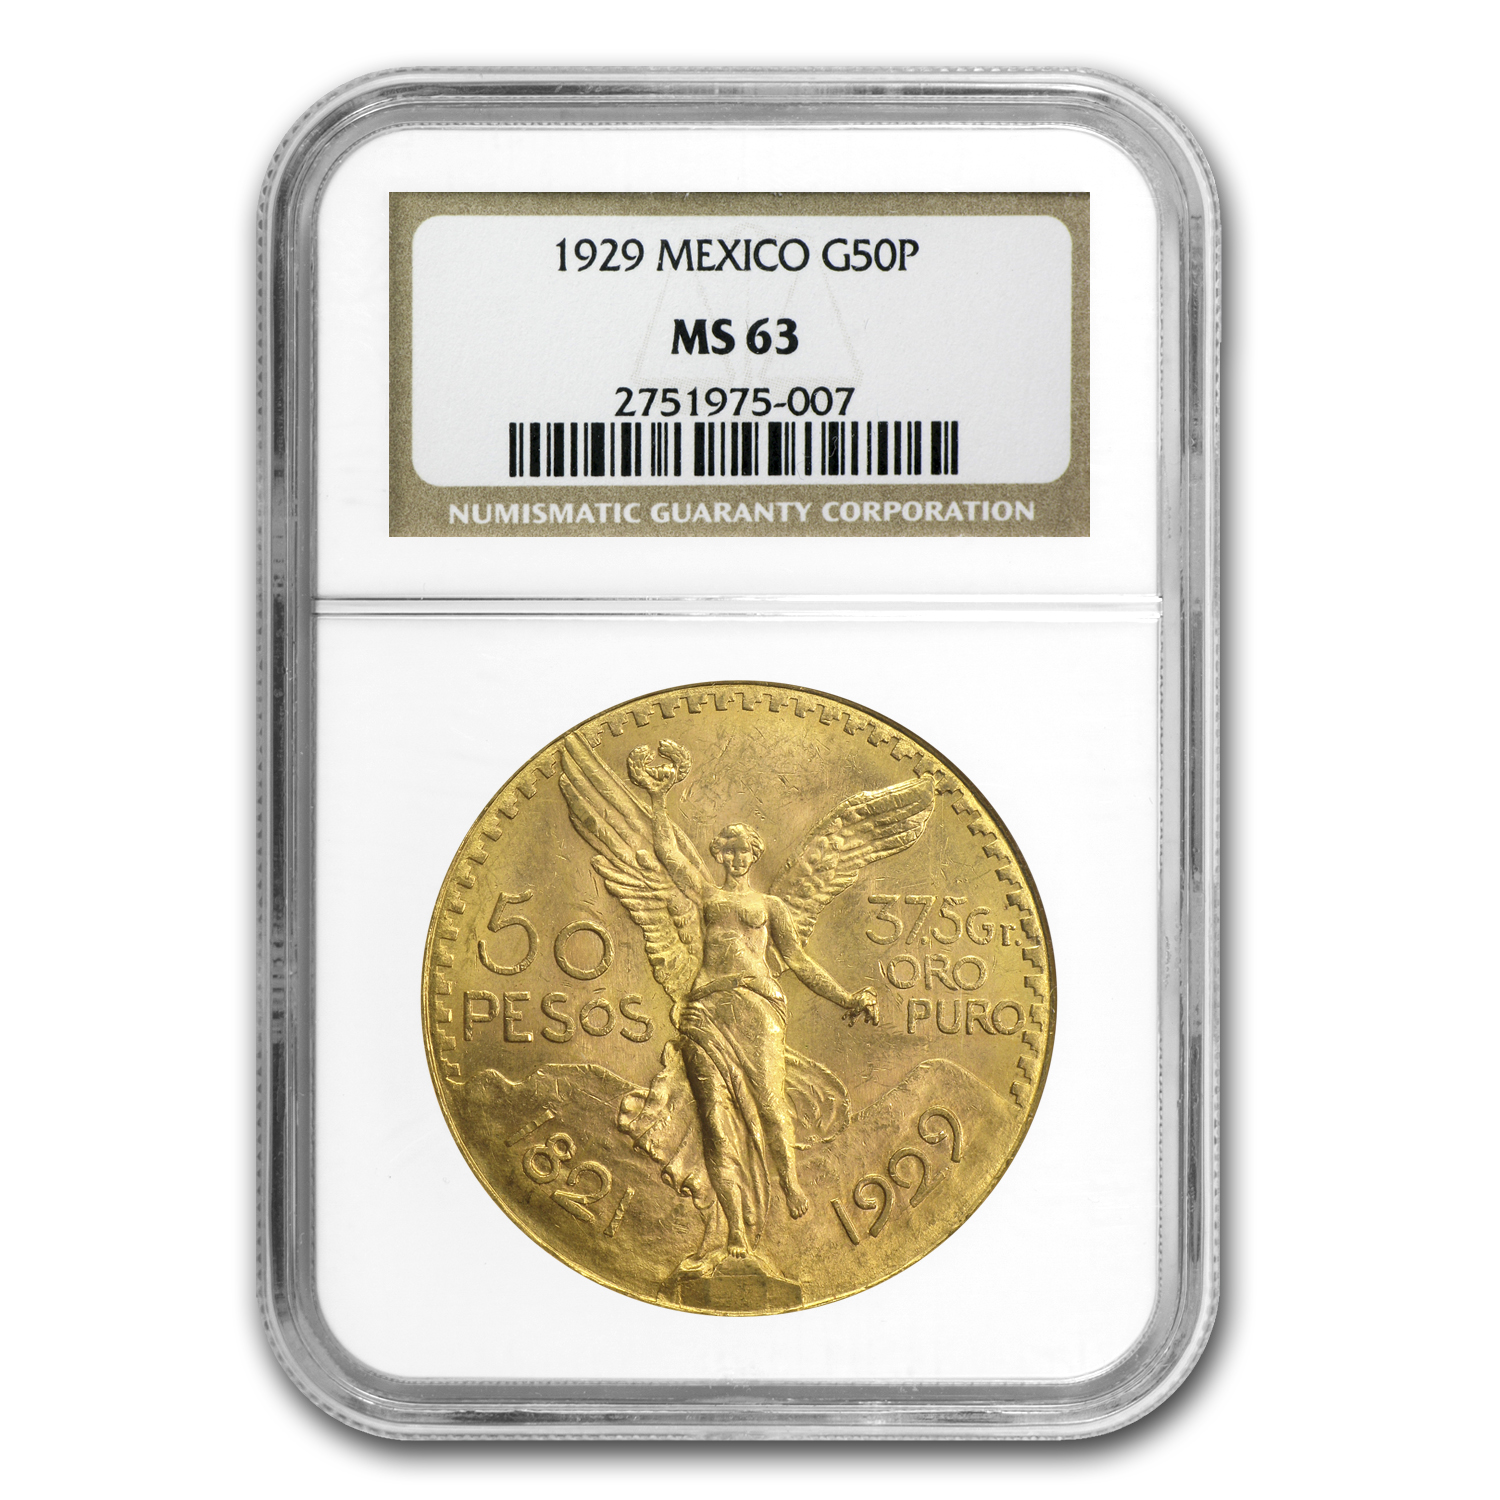 1929 Mexico Gold 50 Pesos MS-63 NGC